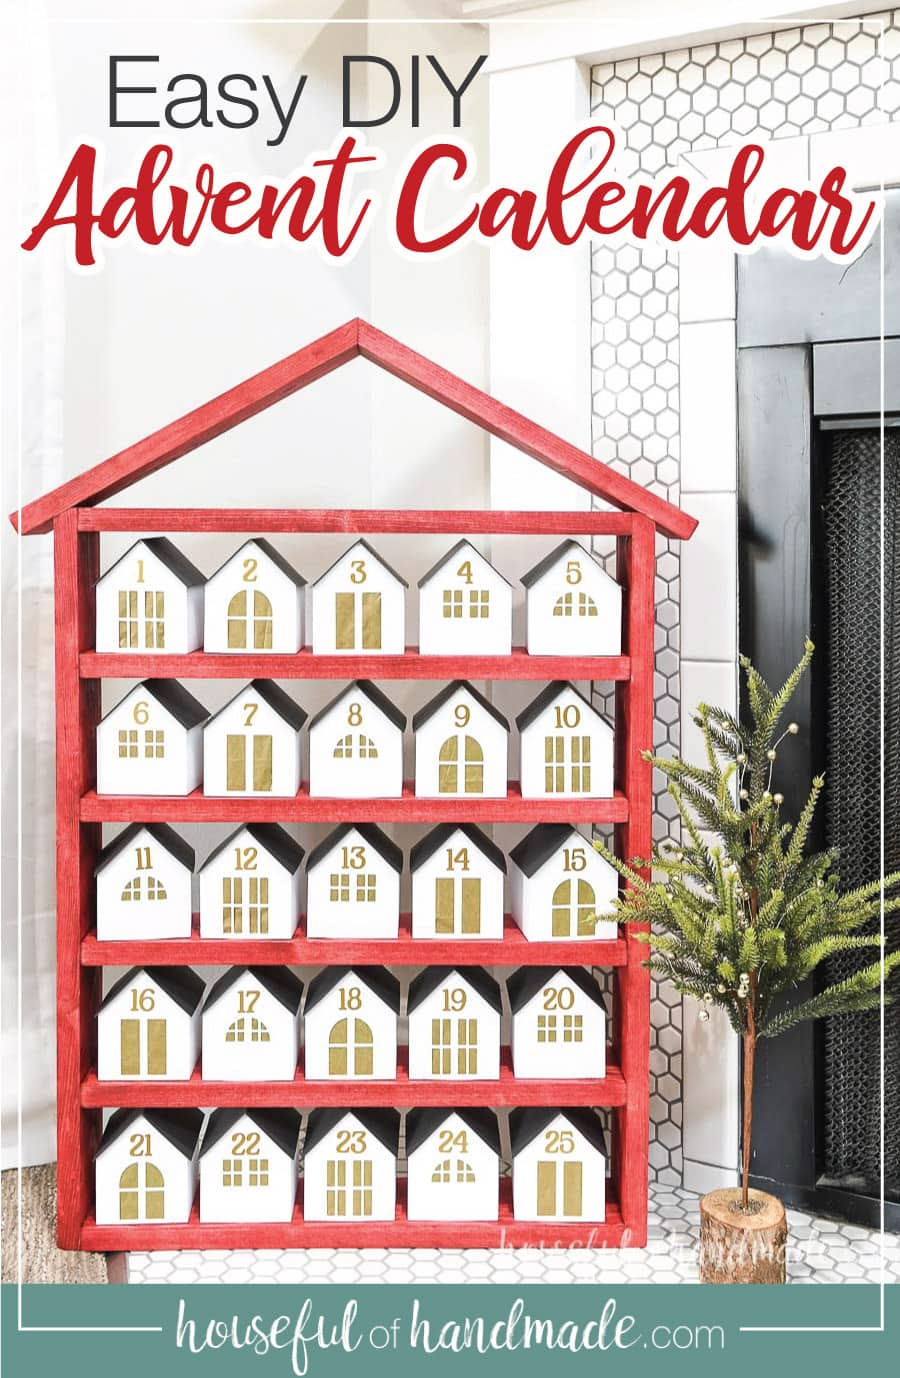 DIY wooden advent calendar made up of a red house shaped shelf with 25 white & gold paper houses on it.